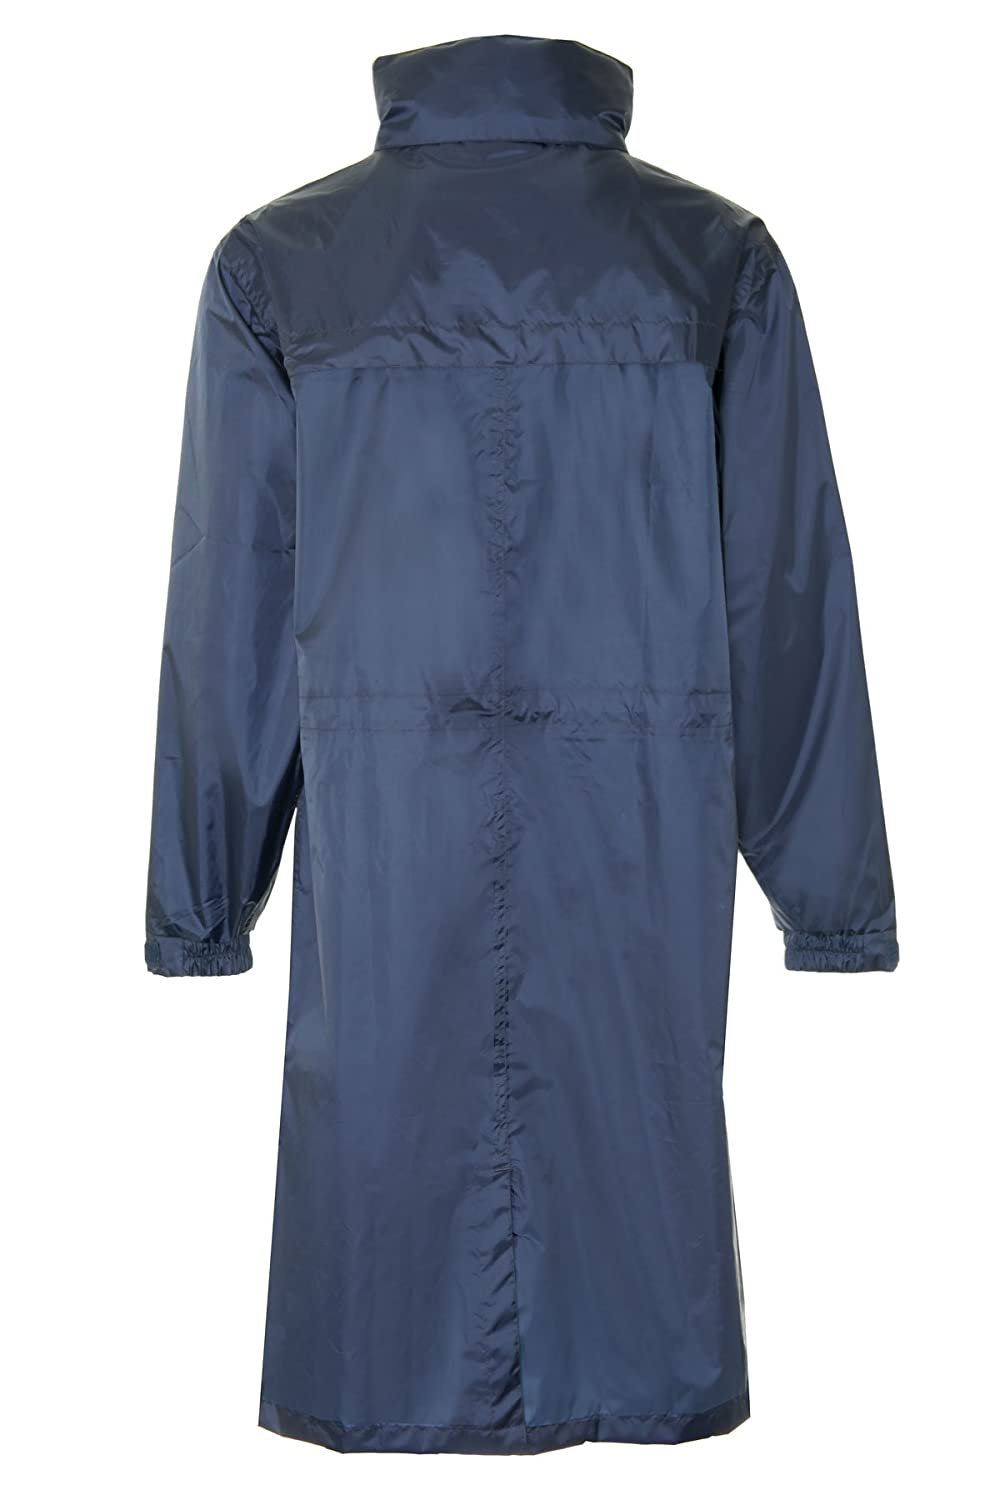 3f6c7faf4 Mens Womens Waterproof Breathable Packaway Raincoat Long Coat Size XL 16   Amazon.co.uk  Clothing